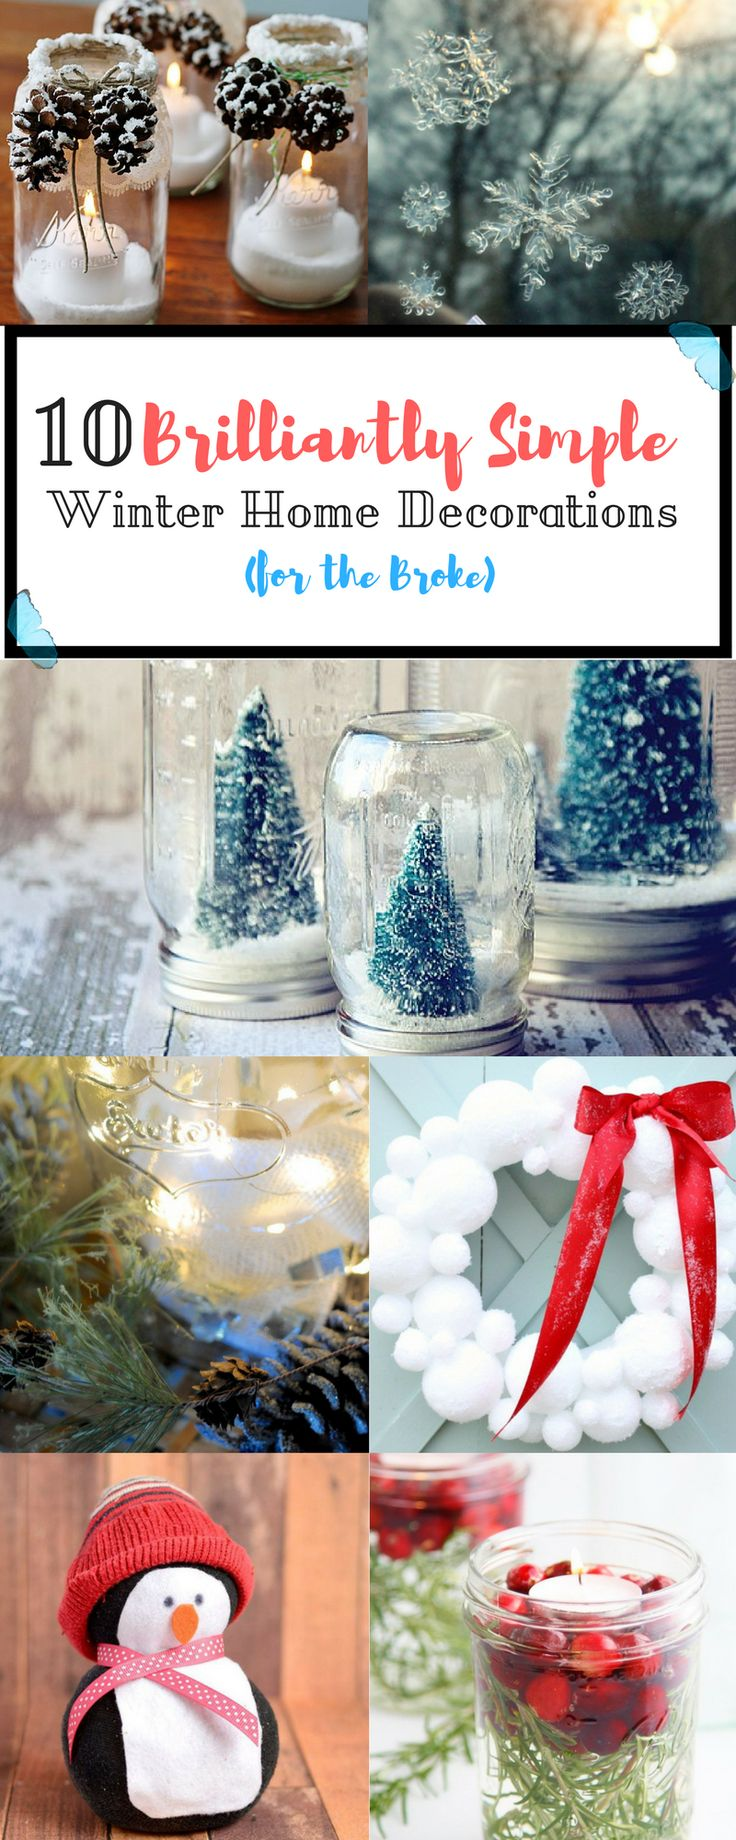 Let's make your house fun this Winter! Here are 10 brilliantly simple Winter home decorations you can make, even if you're broke!